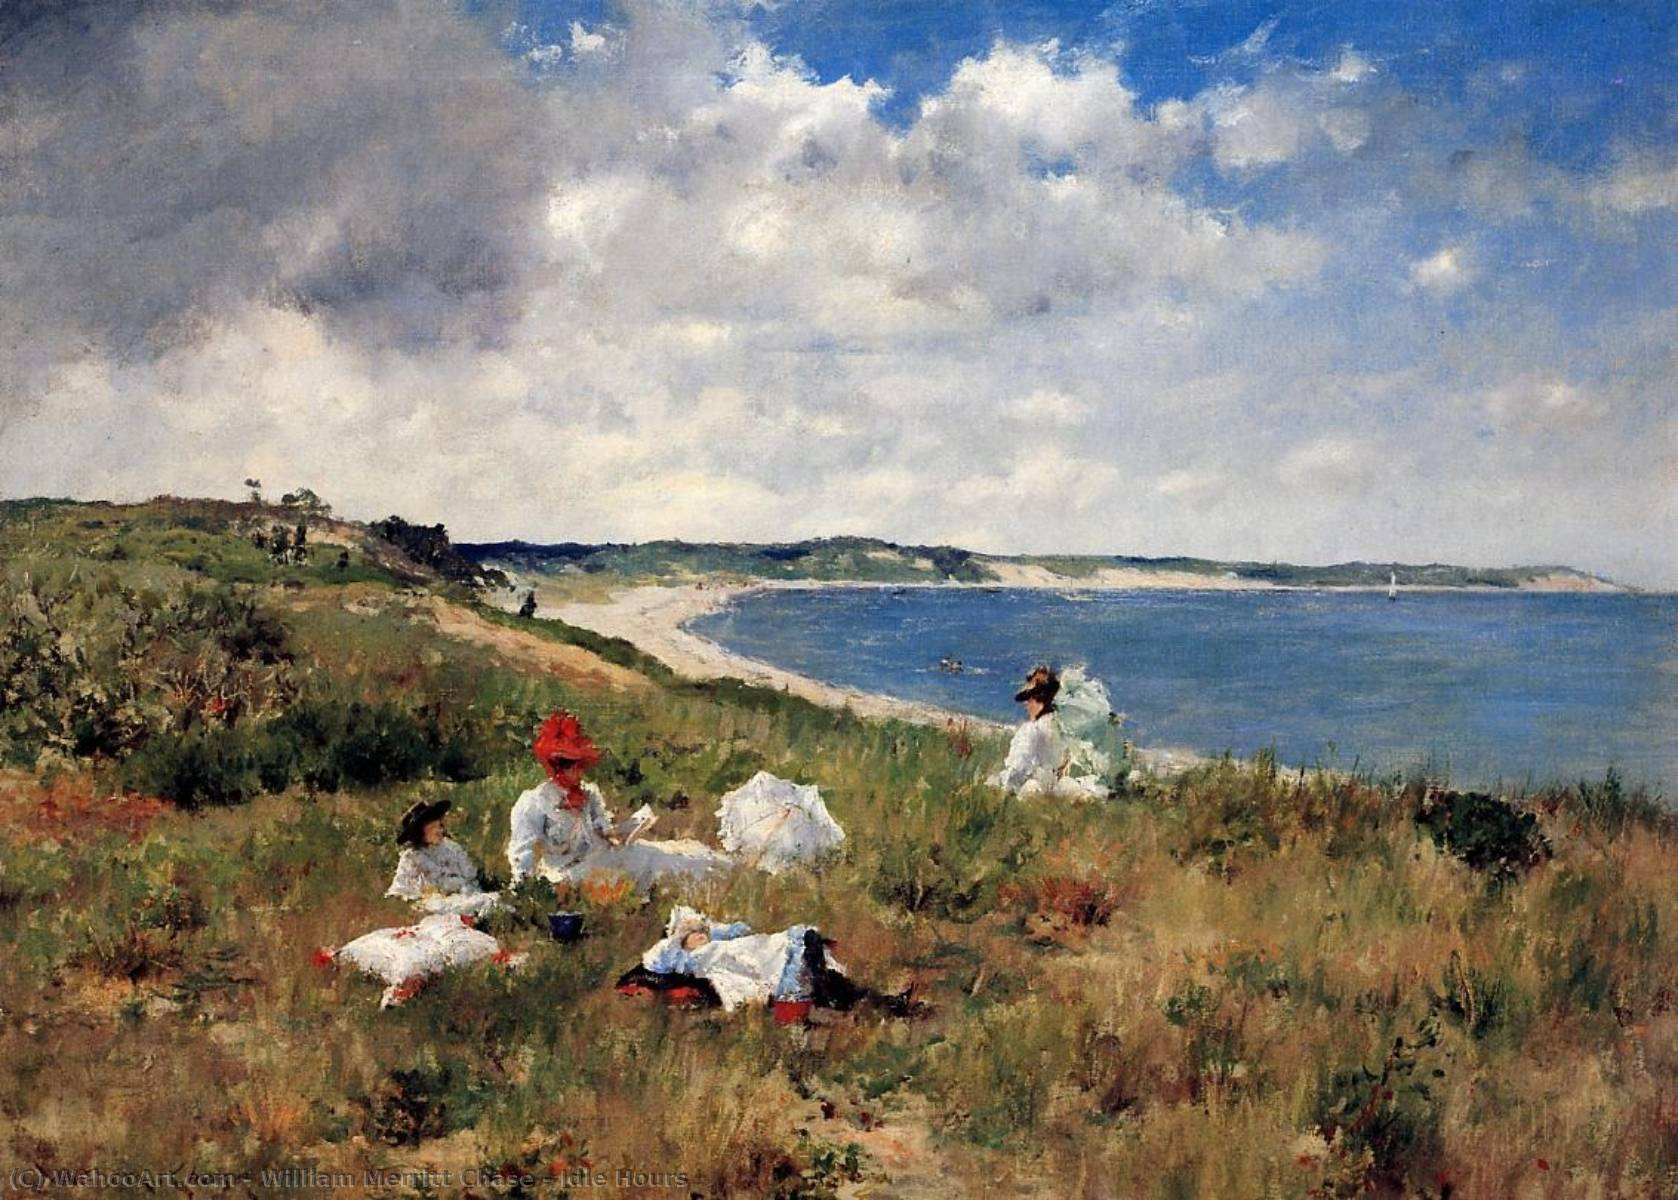 Buy Museum Art Reproductions : Idle Hours by William Merritt Chase | Most-Famous-Paintings.com